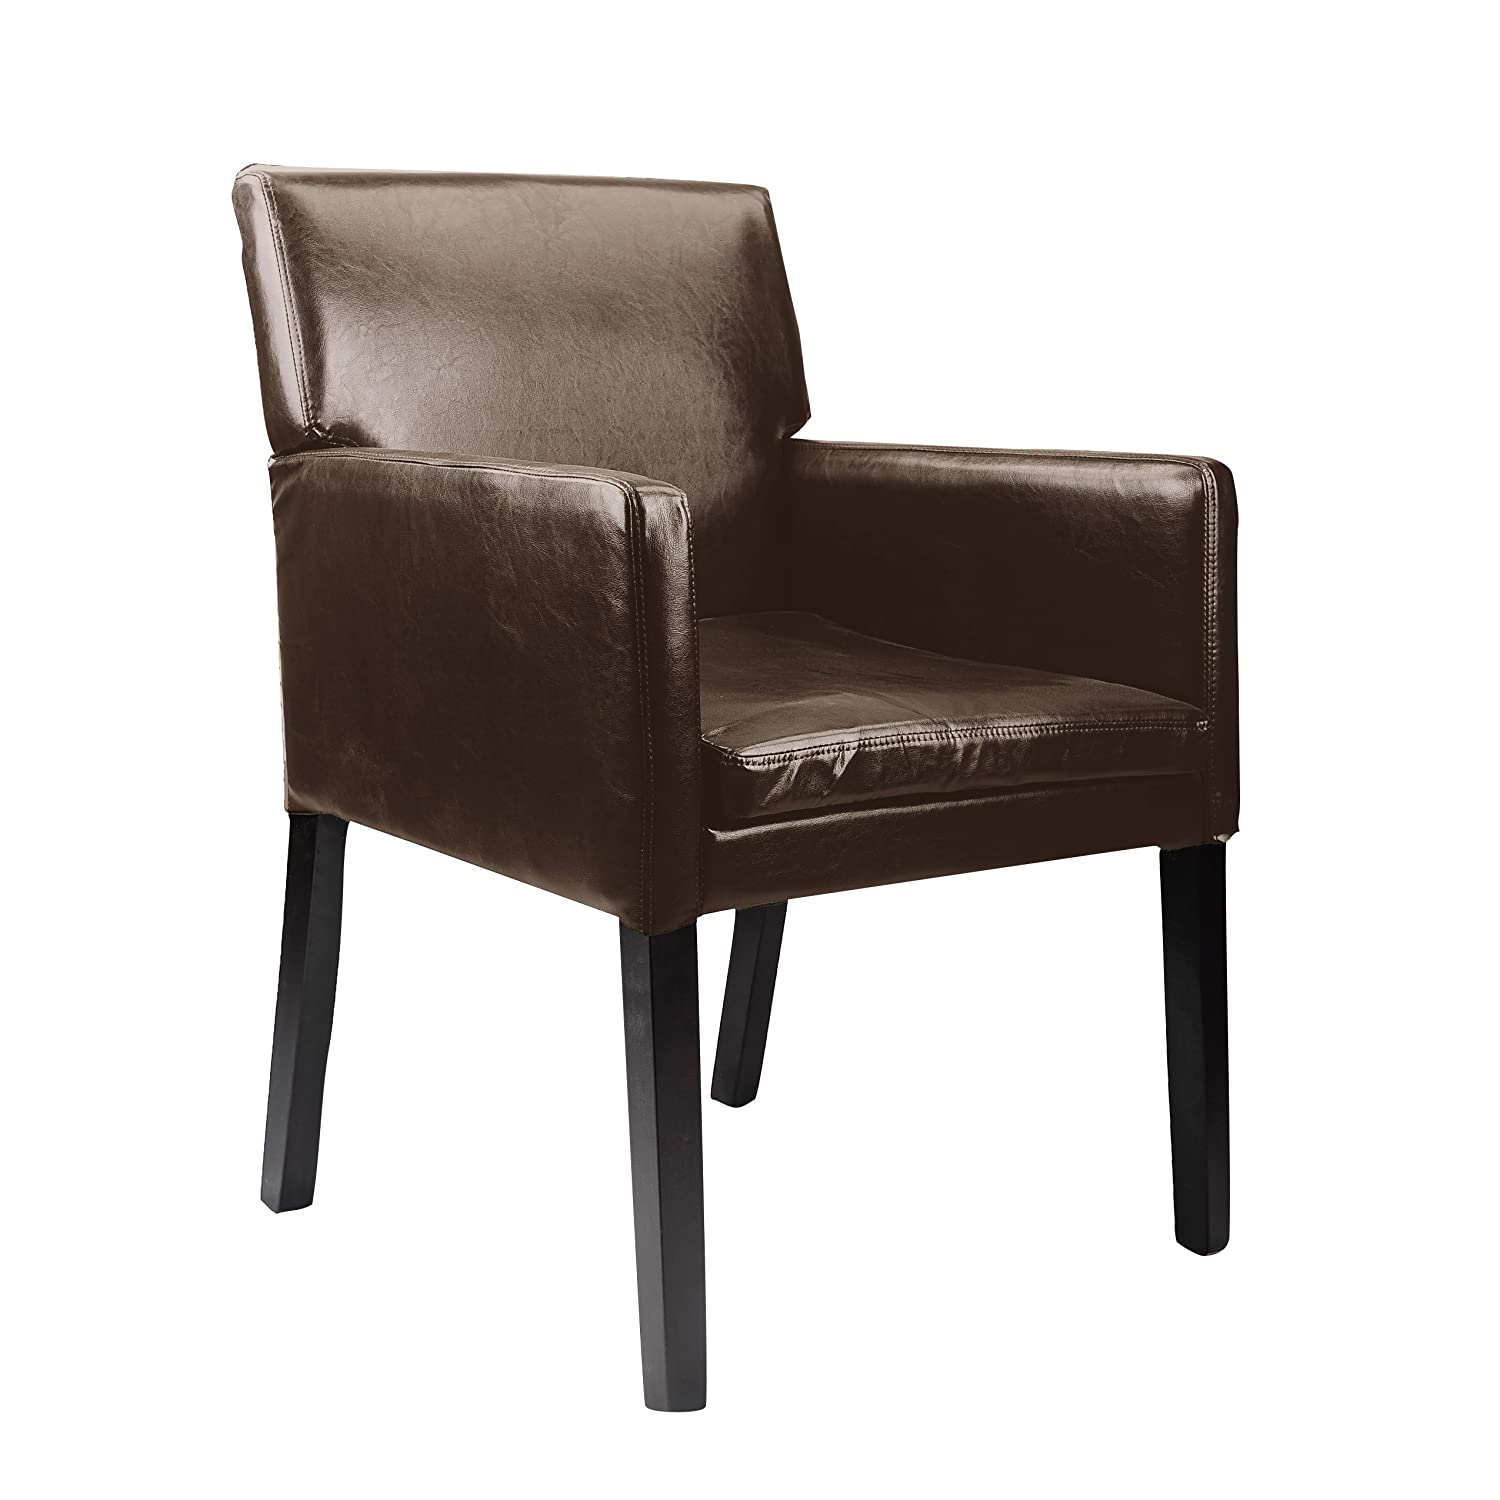 CorLiving LAD-629-C Antonio Accent Chair in Dark Brown Bonder Leather